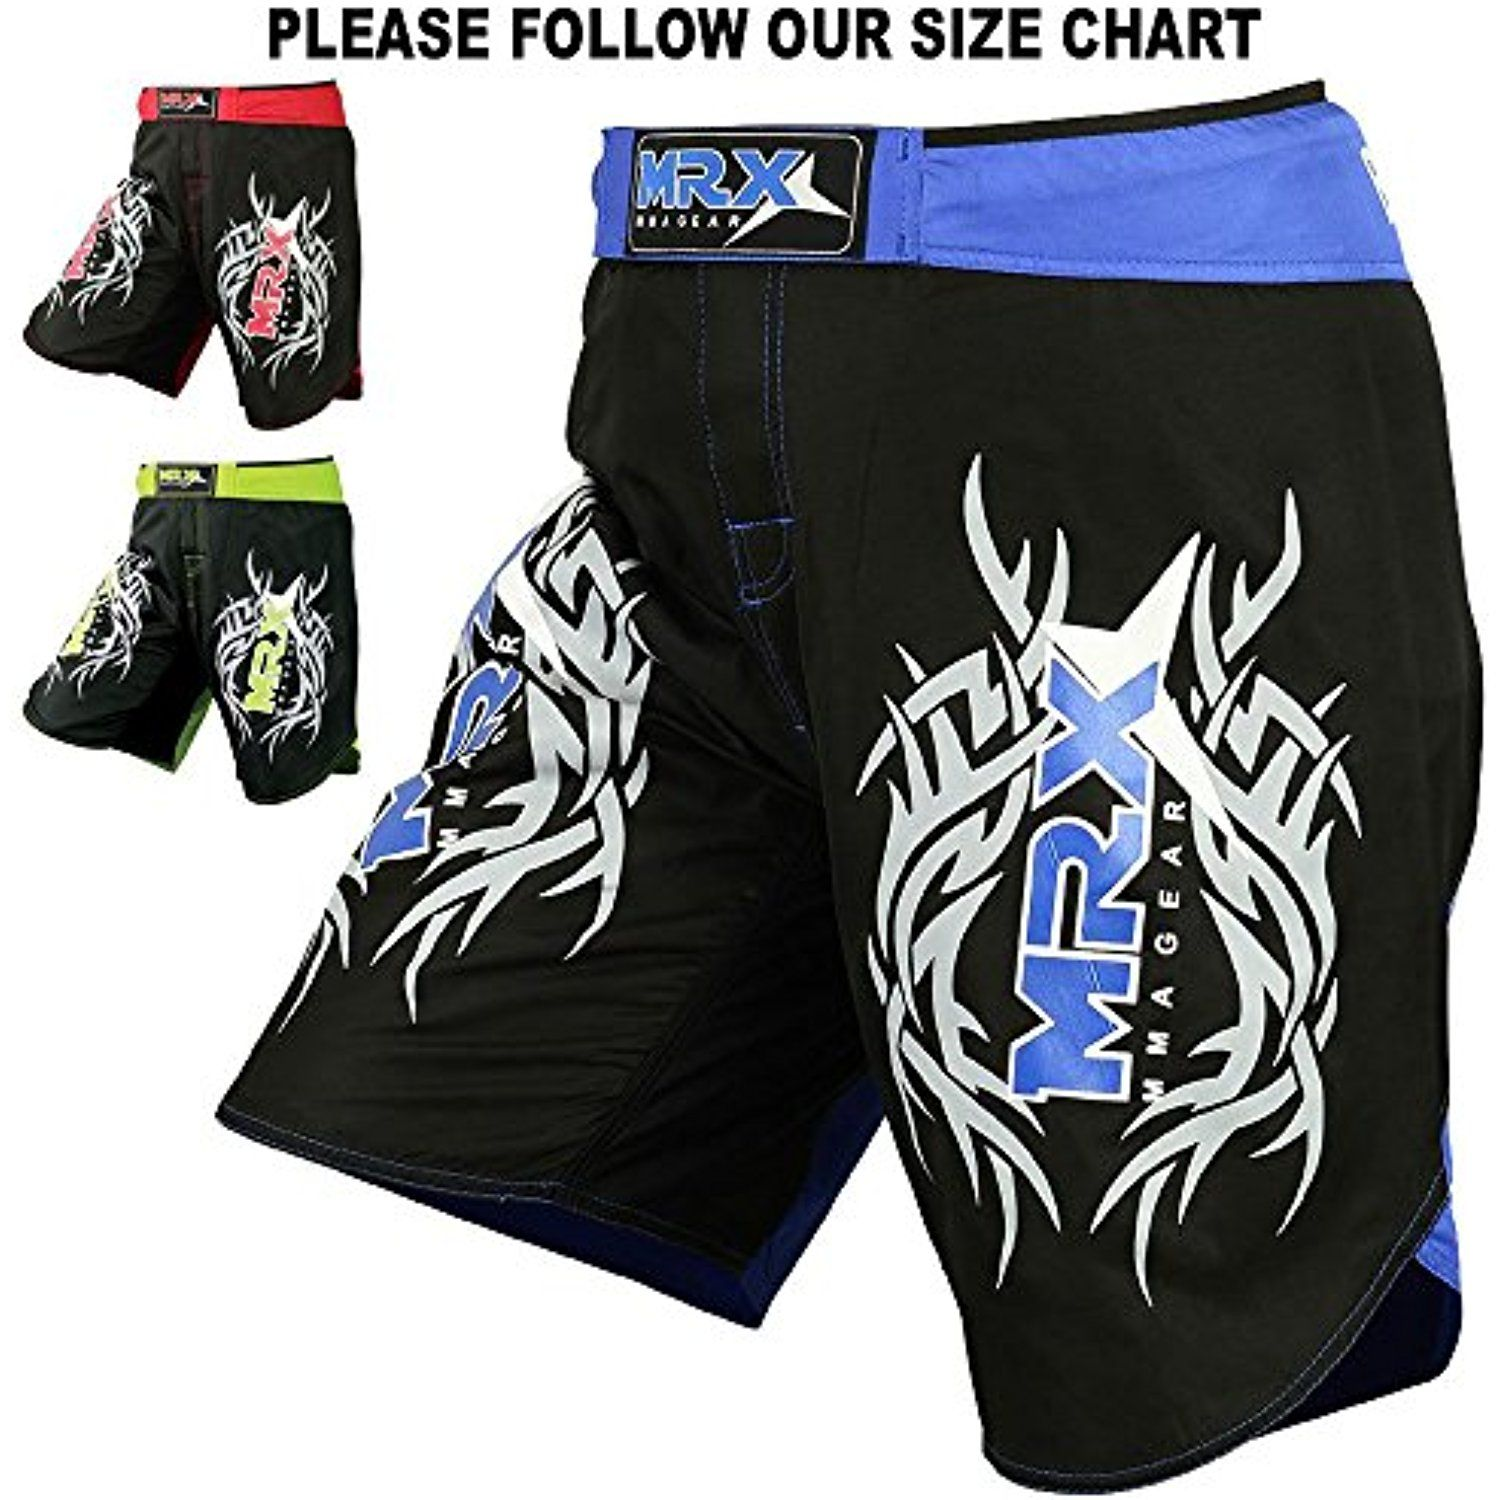 Kick Boxing MMA Shorts UFC Cage Fight Fighter Grappling Muay Thai Men/'s Short